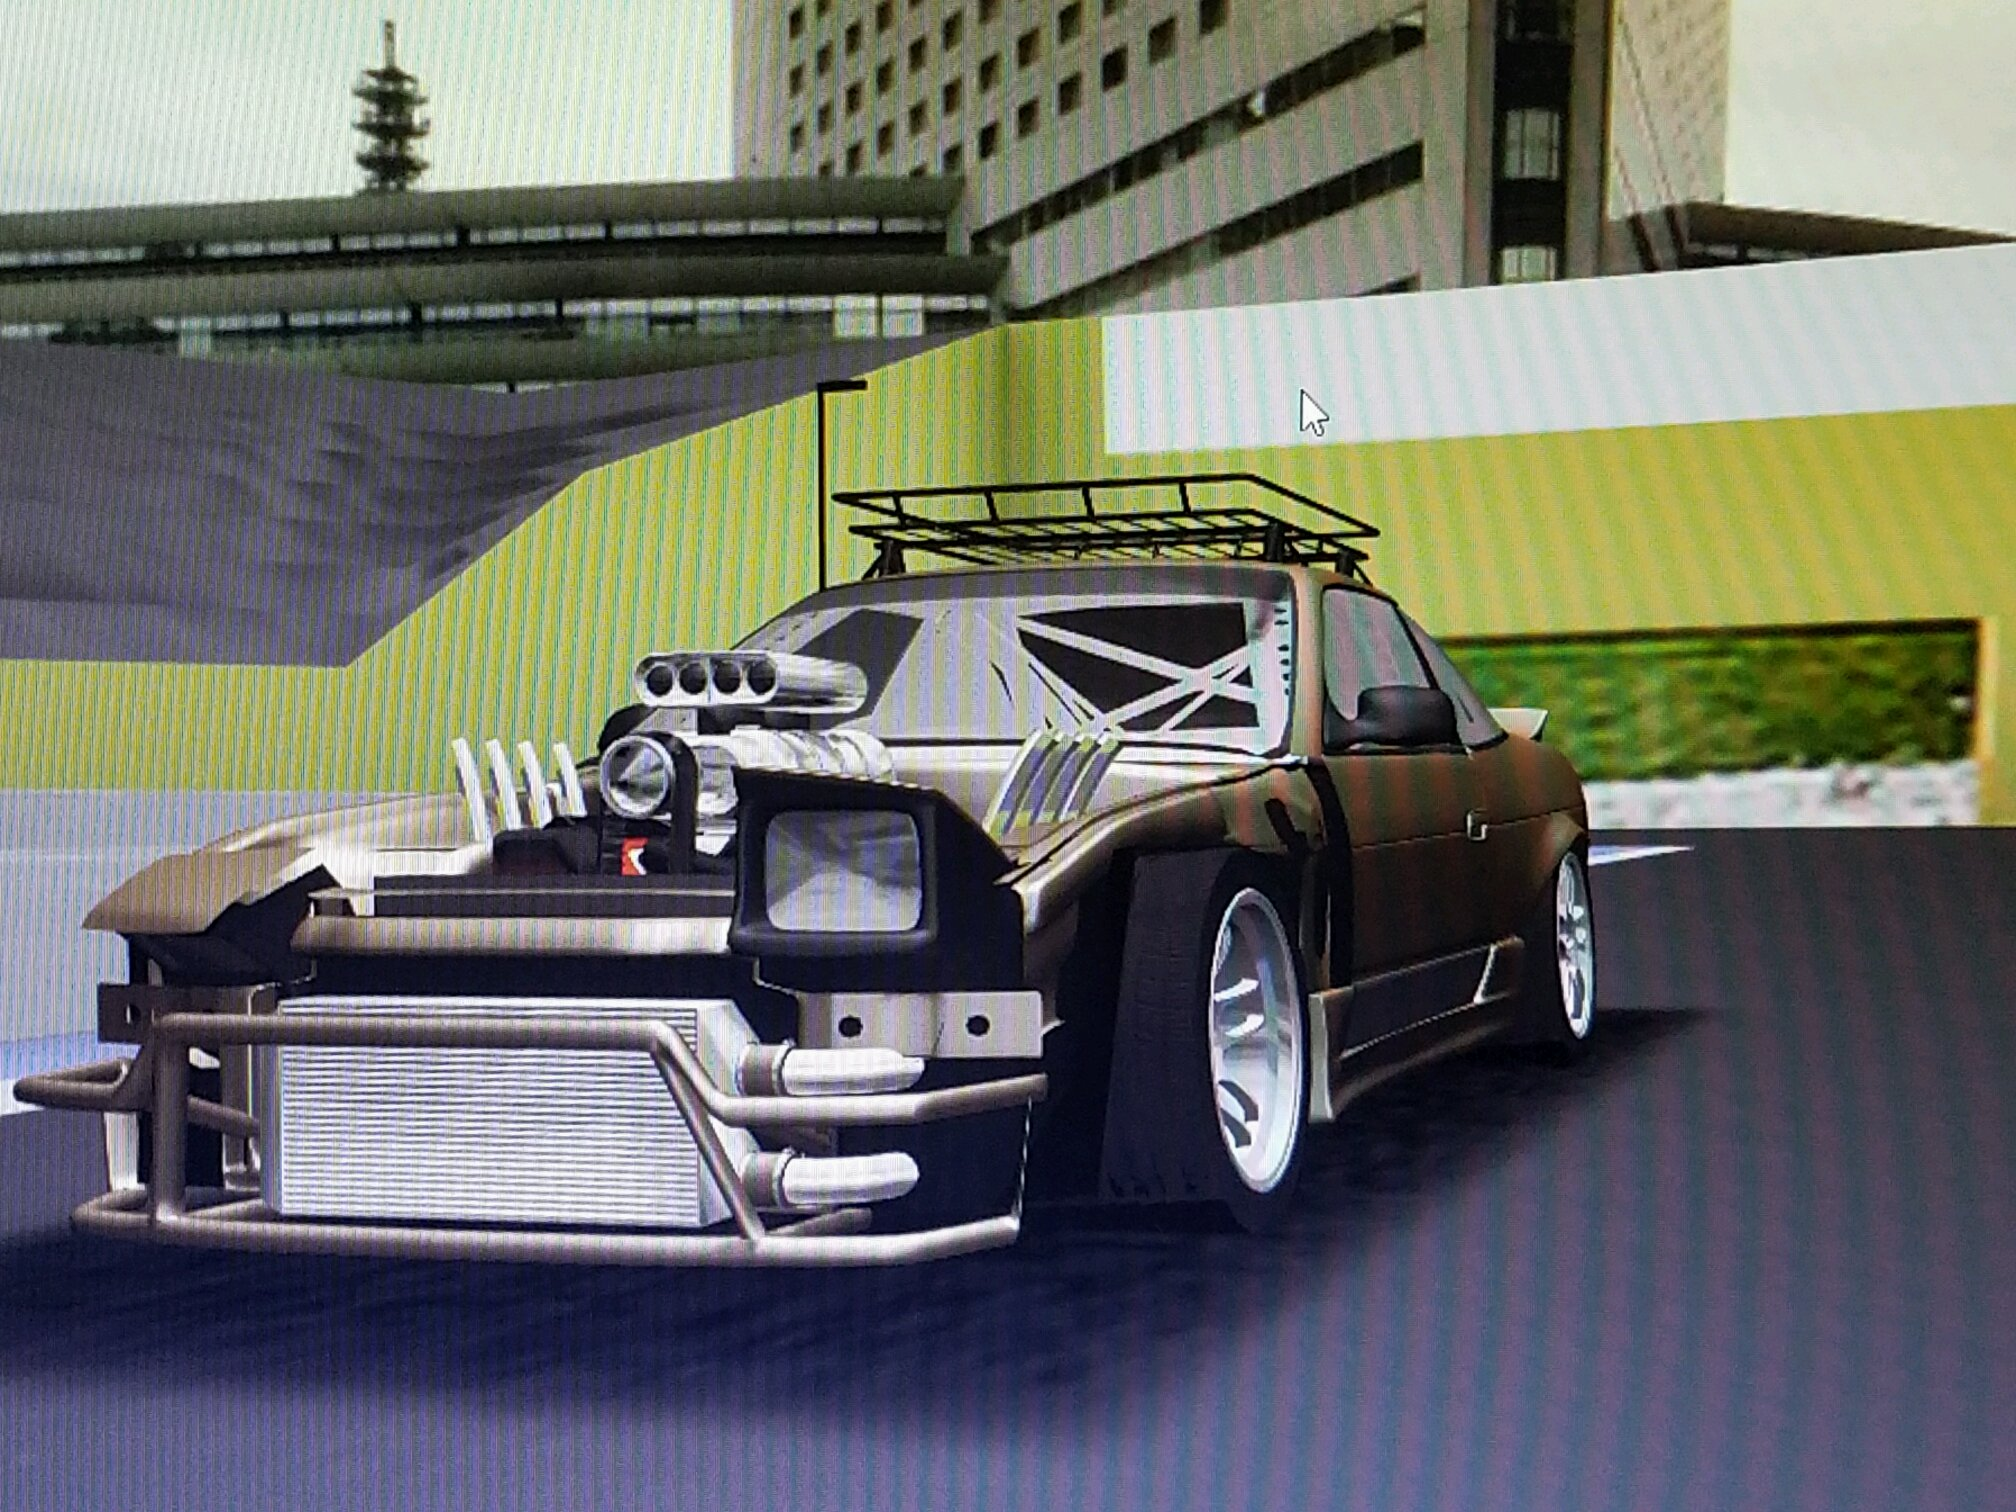 H And S Tuner >> Here Are Some Examples Of My S Tuner Builds If You Want Me